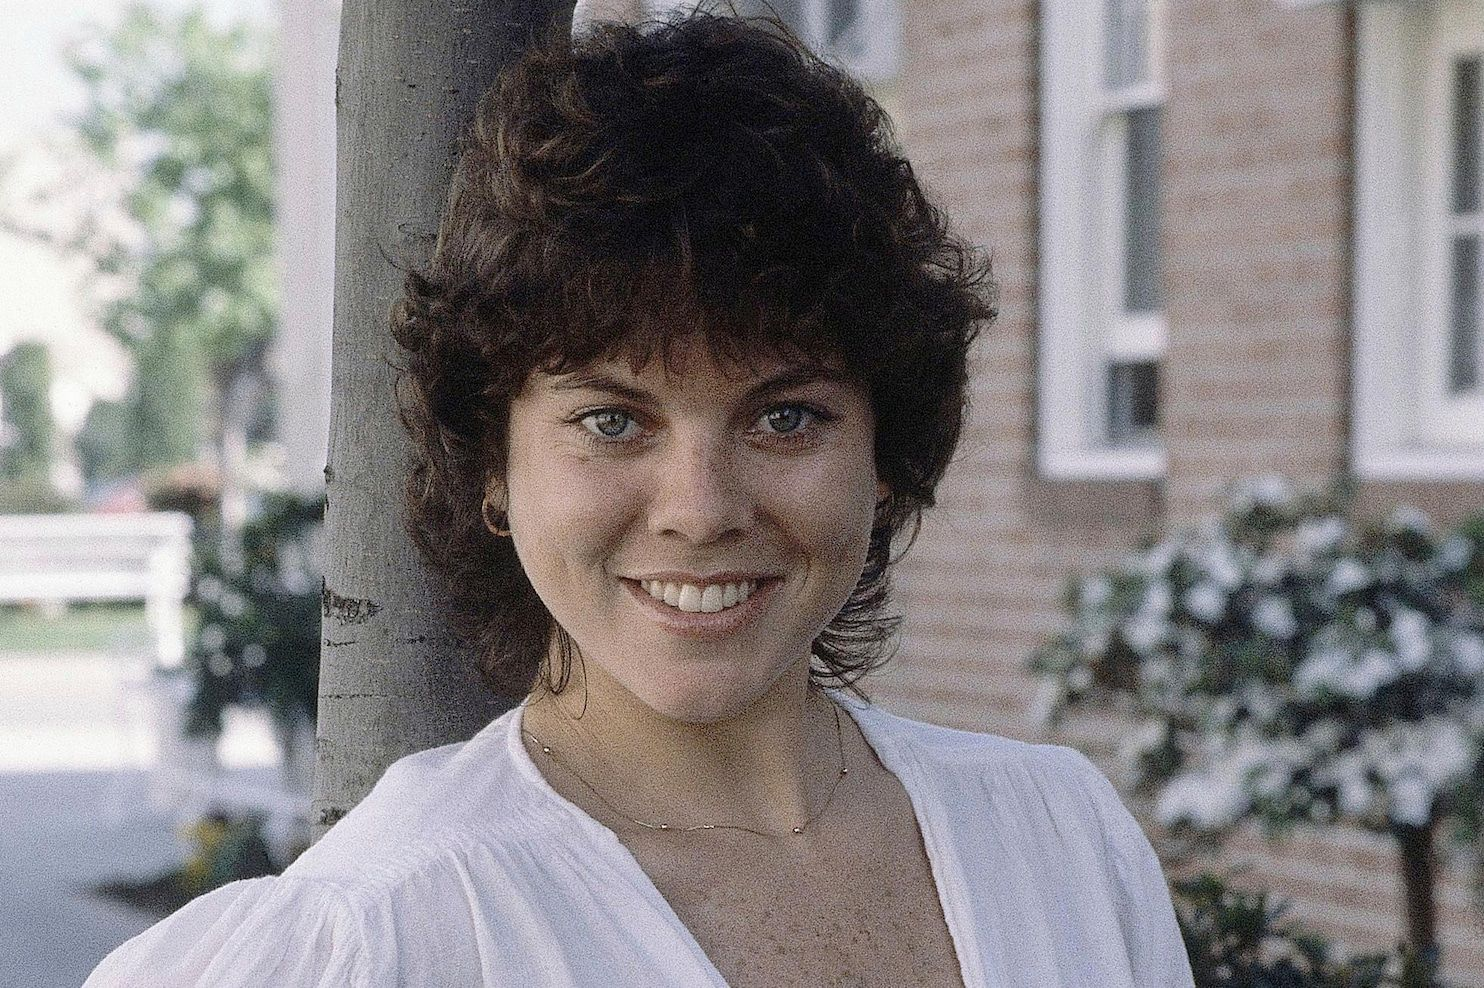 Erin Moran, actress from 'Happy Days' TV show, dies at 56 - Washington Post